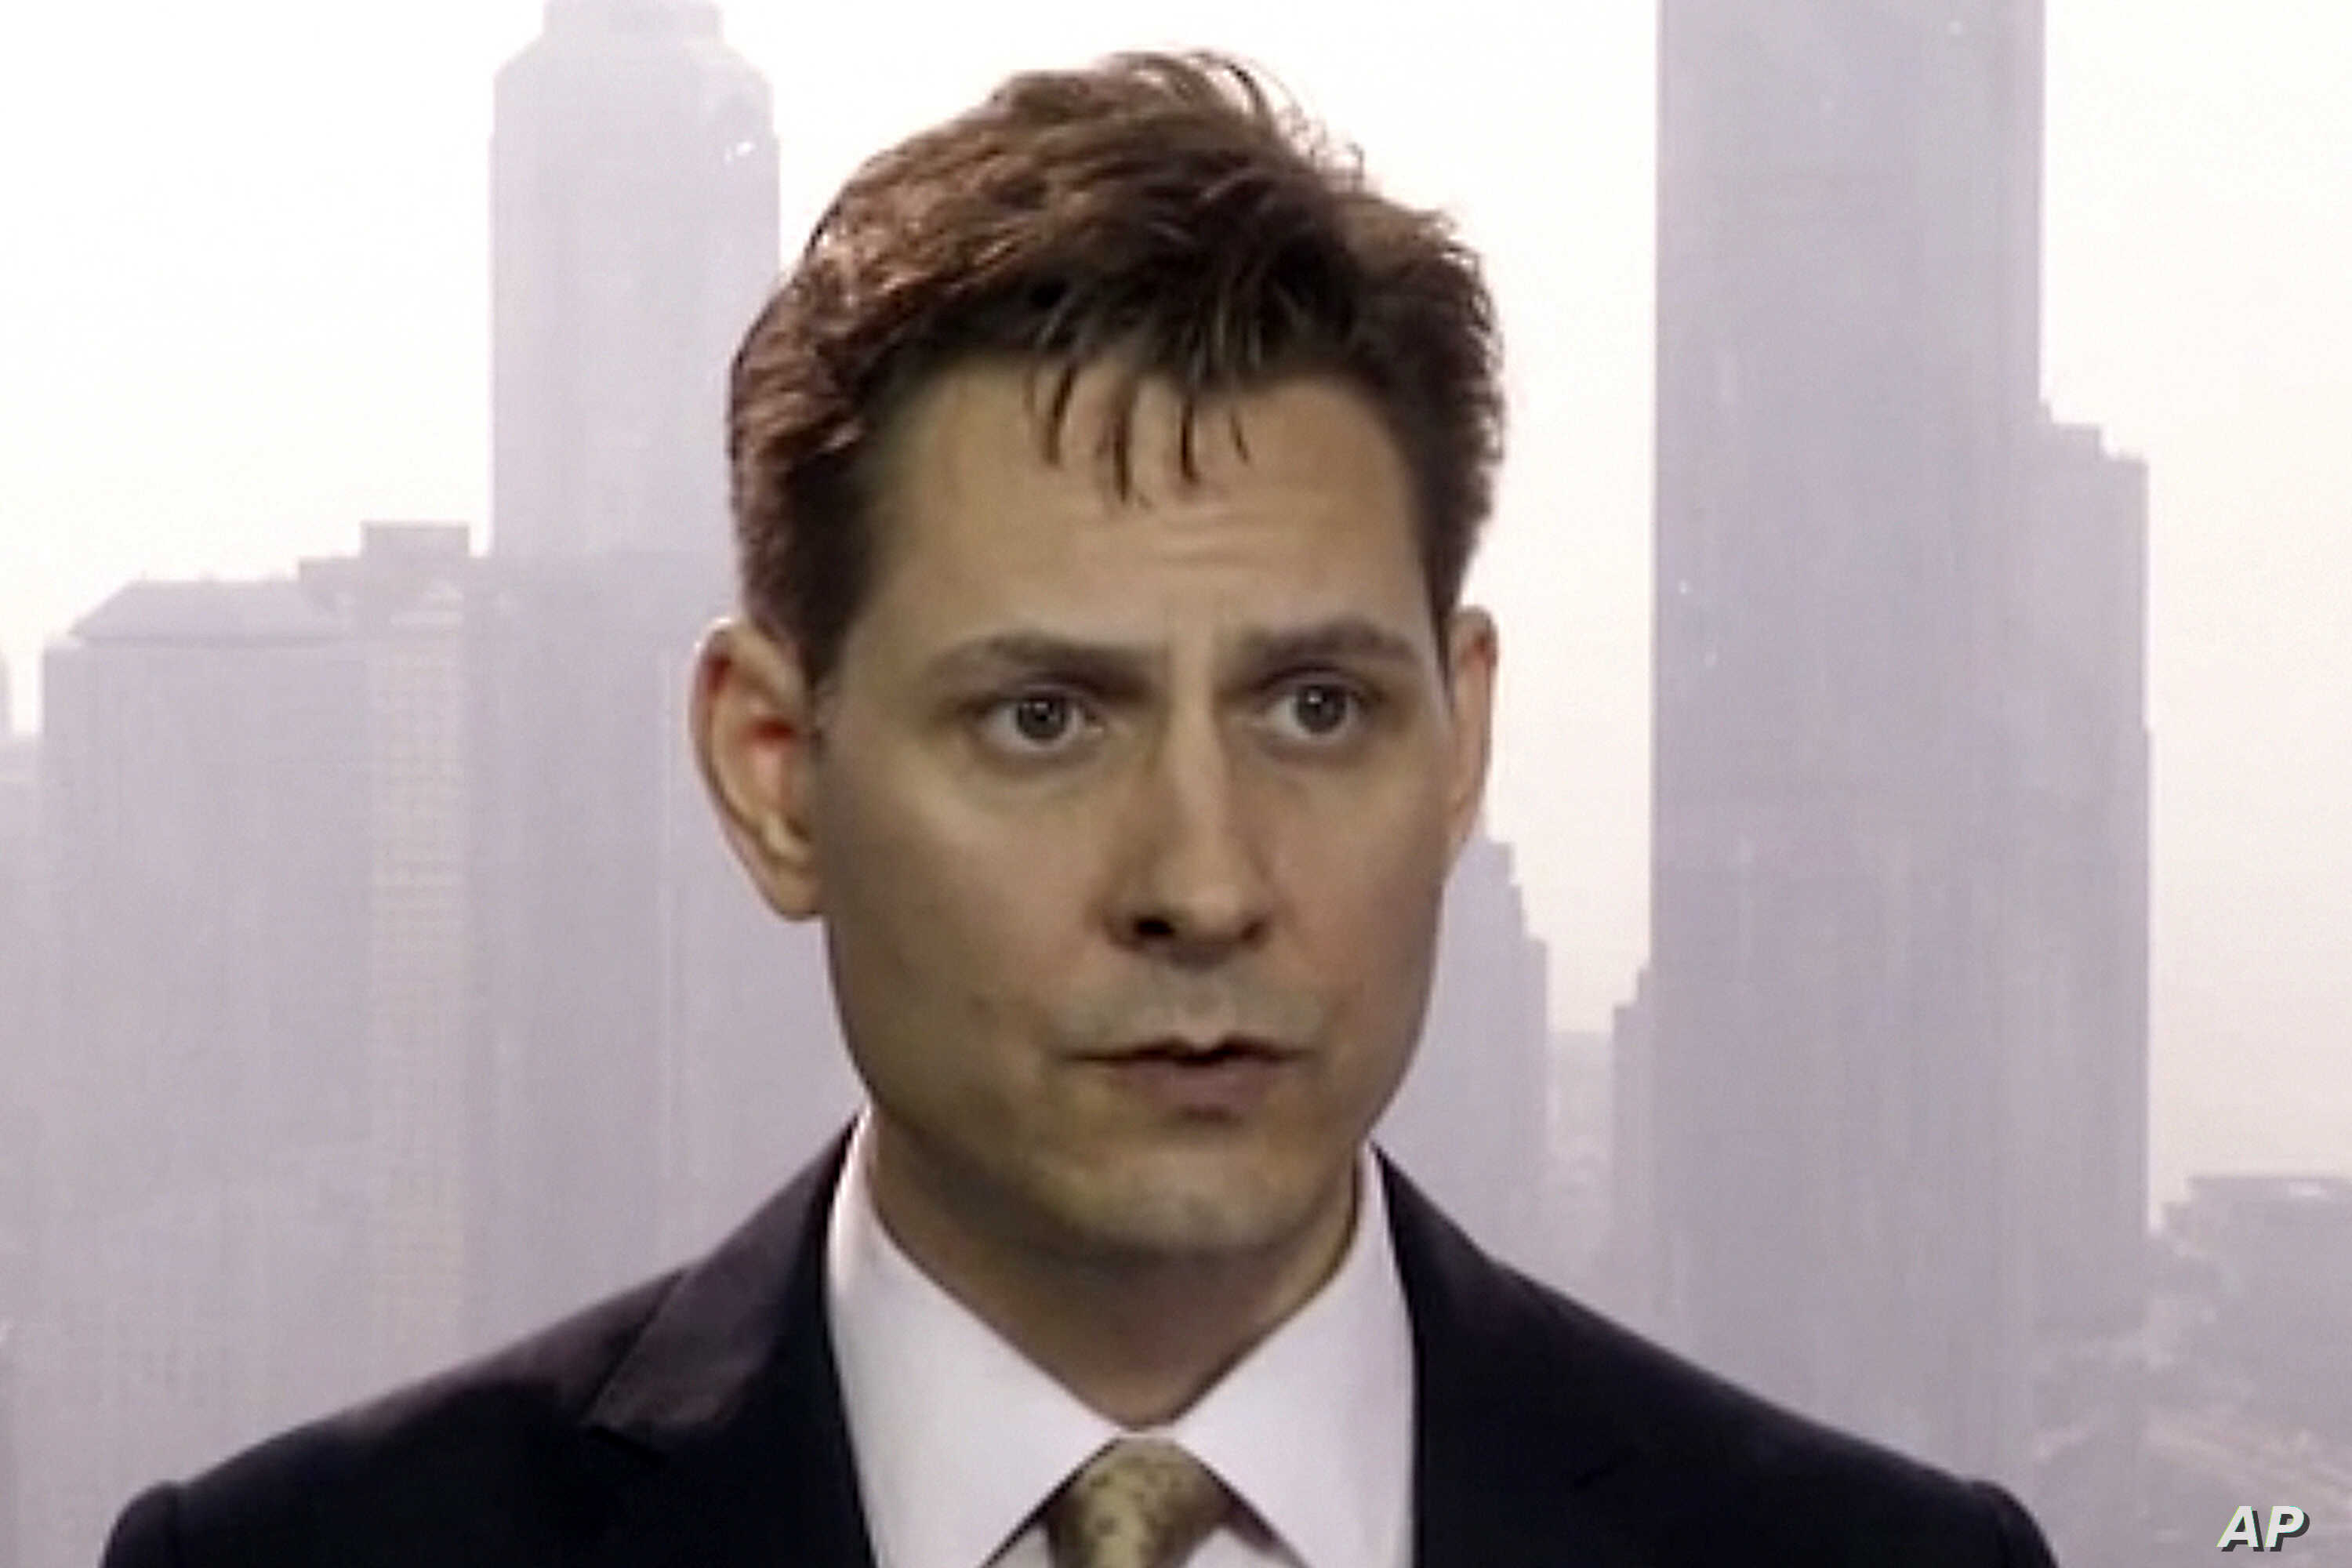 FILE -Image made from a video on March 28, 2018 shows Michael Kovrig, an adviser with the International Crisis Group, a Brussels-based non-governmental organization, speaking during an interview in Hong Kong.